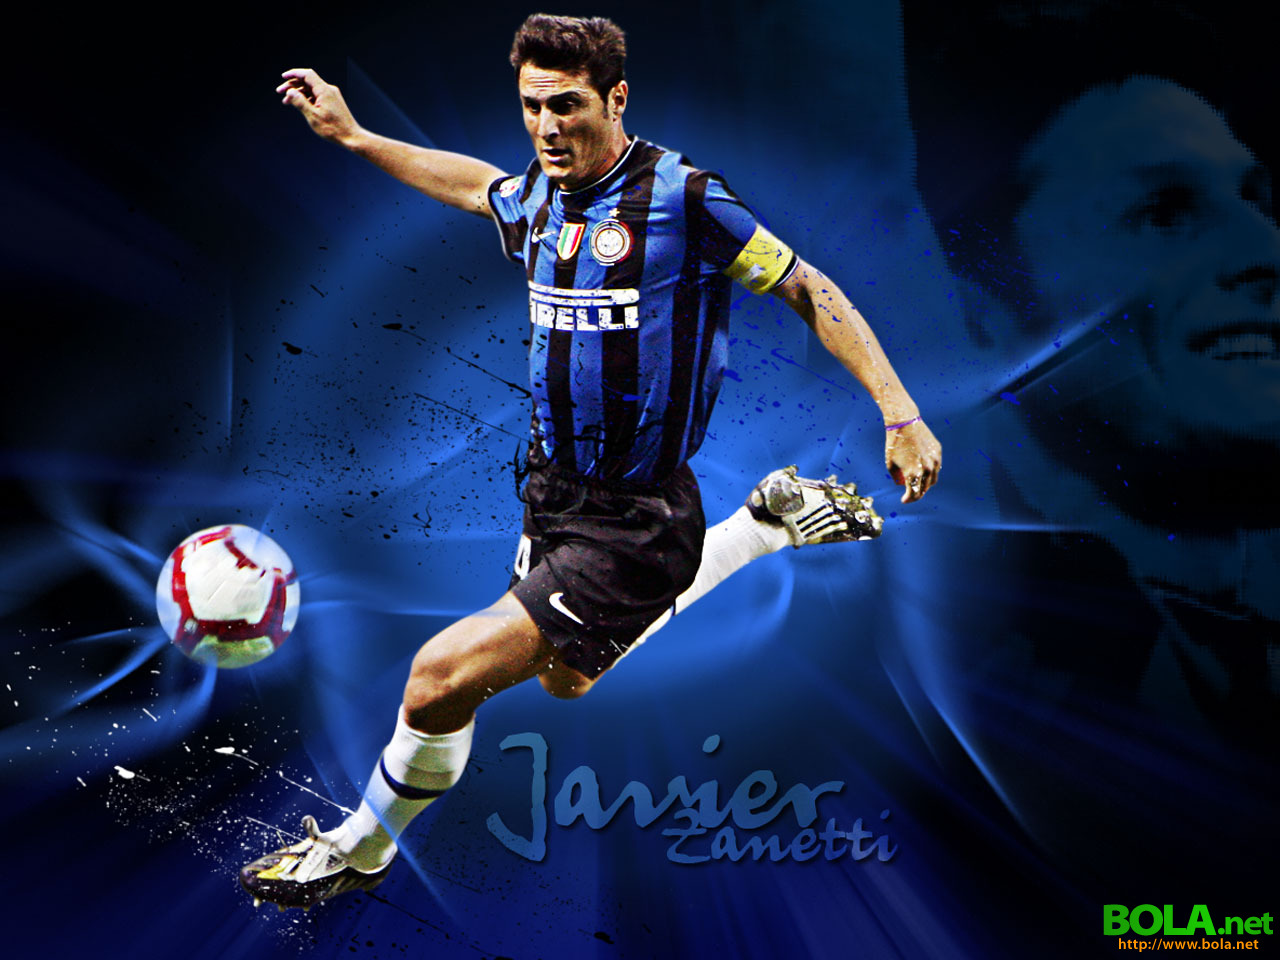 Javier Zanetti - Wallpaper Colection